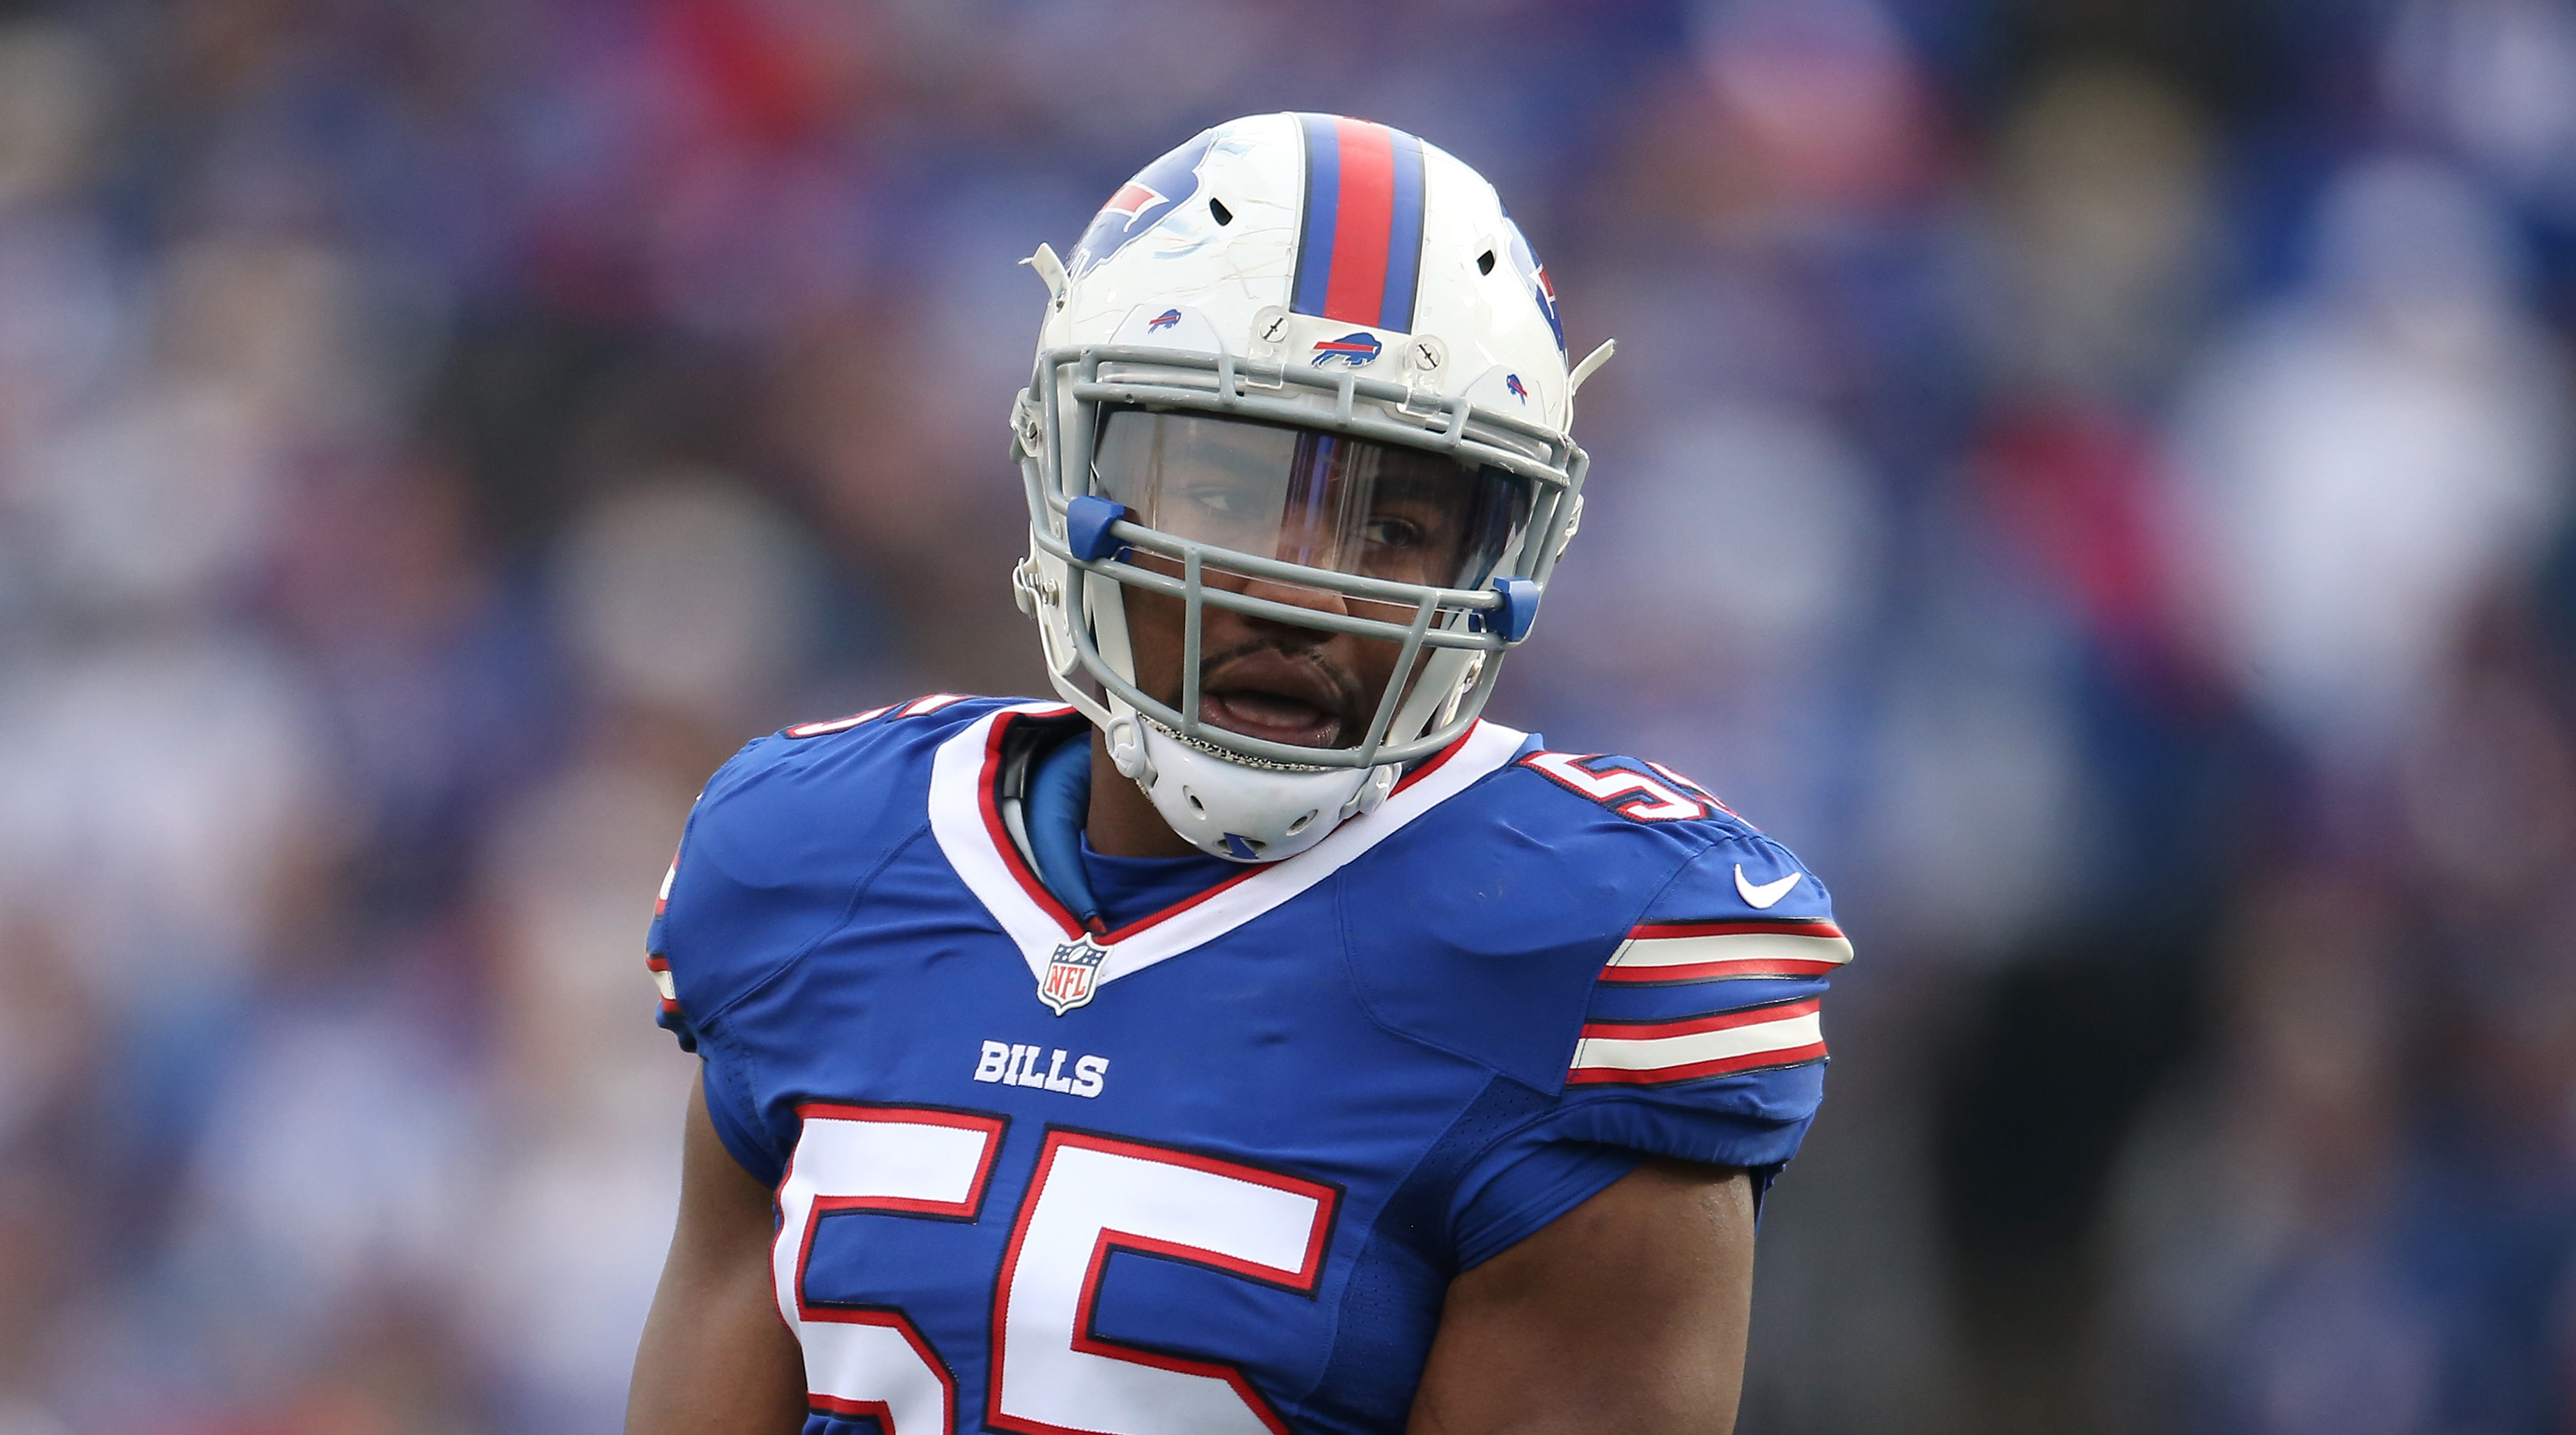 reputable site 7c7e6 5a258 Jerry Hughes fined $53,482 for yelling at official | SI.com